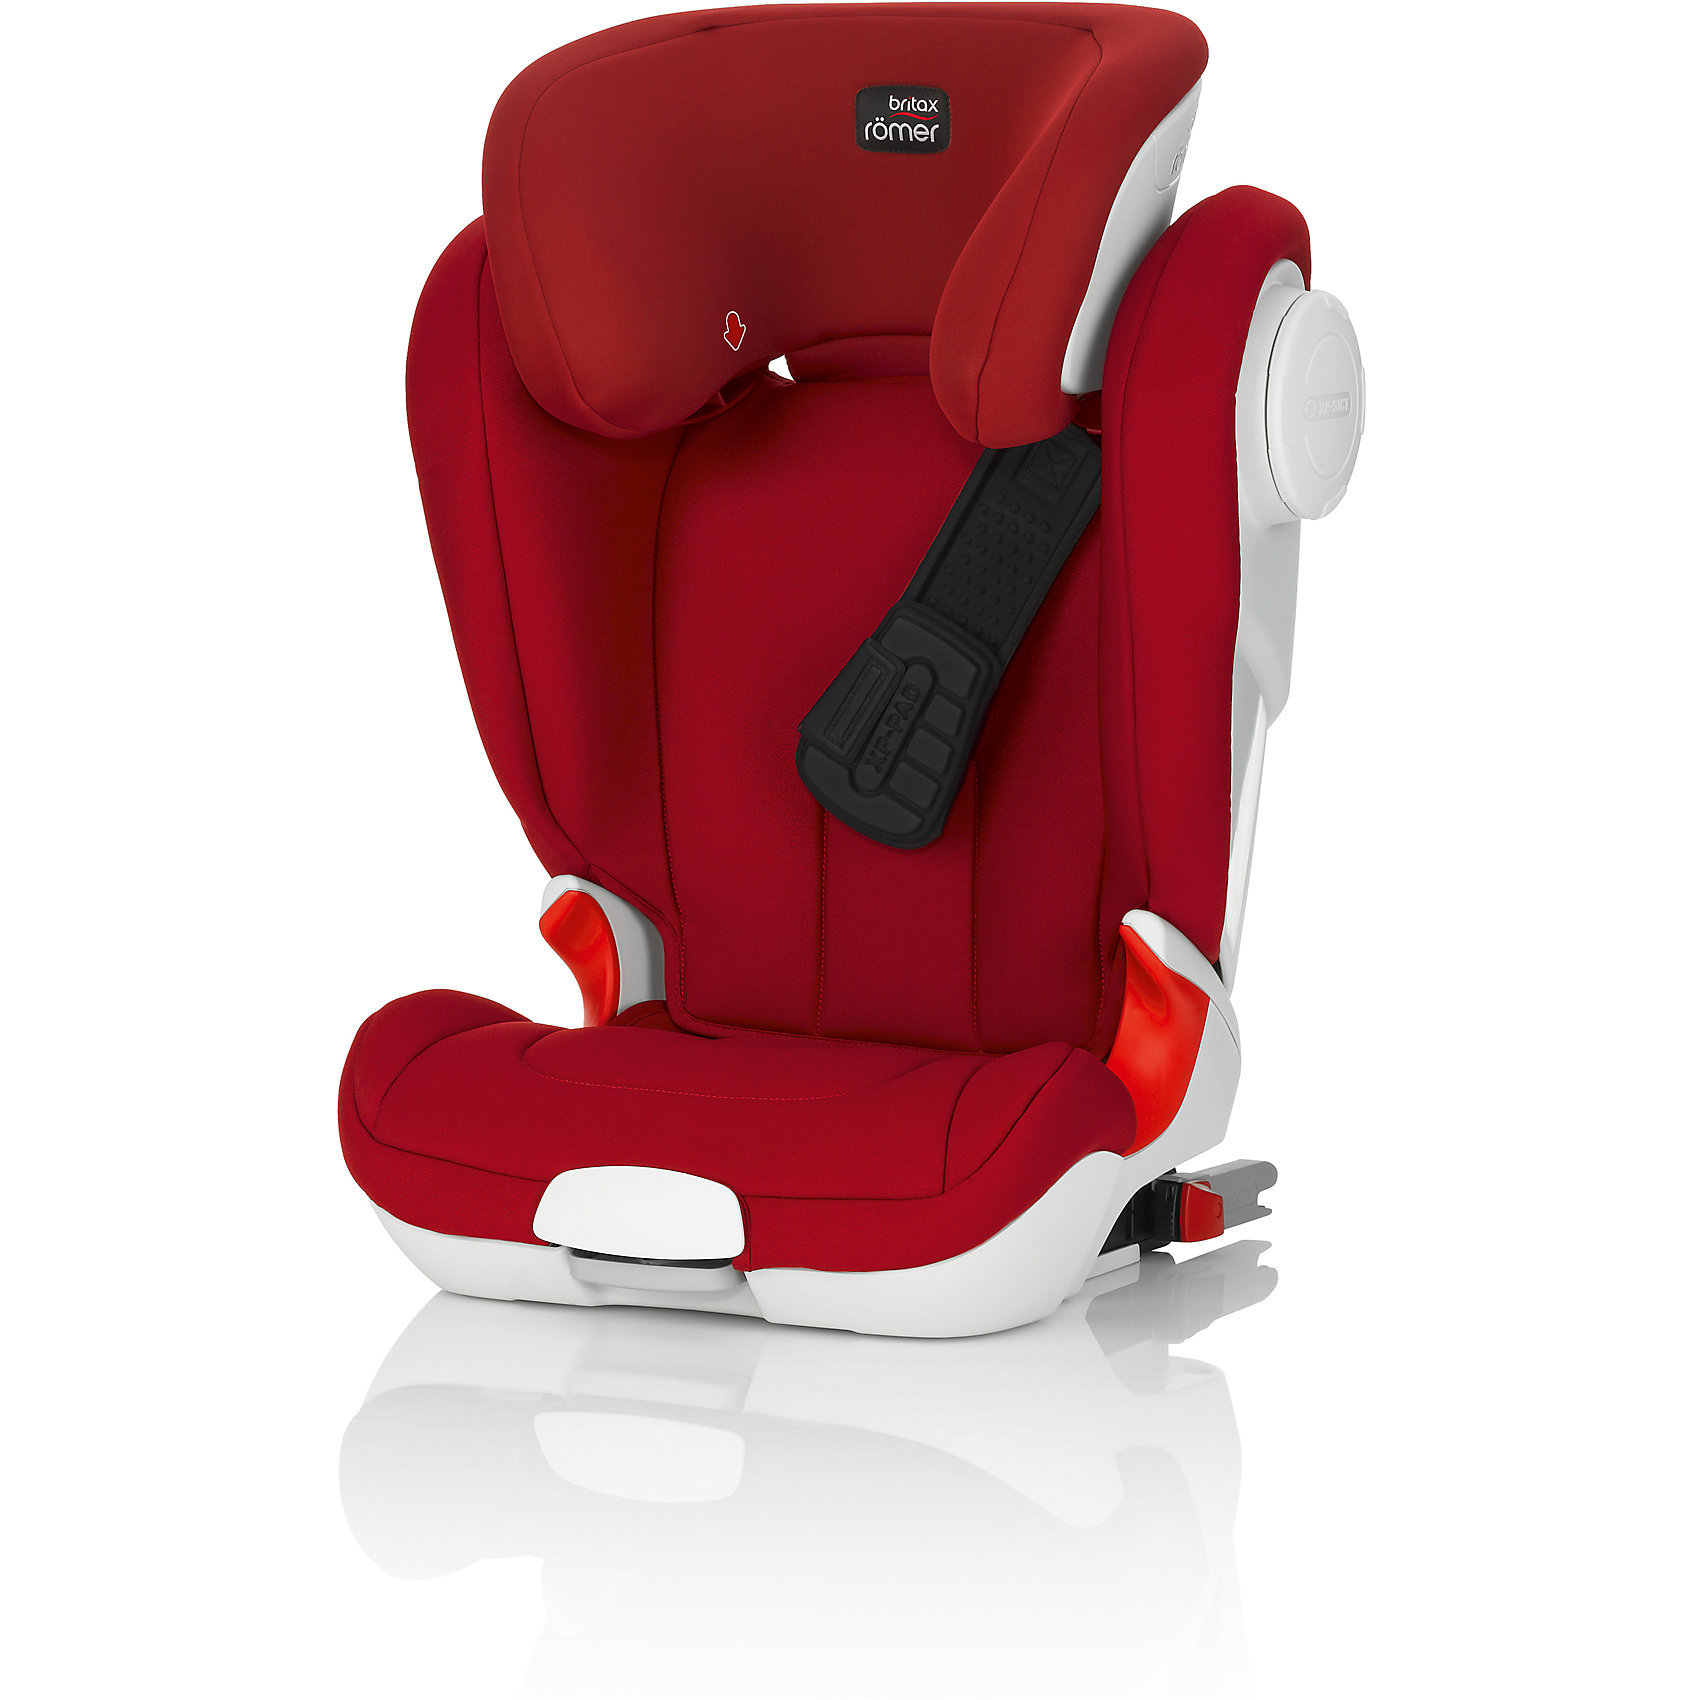 Britax Römer Автокресло KIDFIX XP-SICT, 15-36 кг., BRITAX ROMER, Flame Red Trendline active yarn net stitching design gym leggings in black